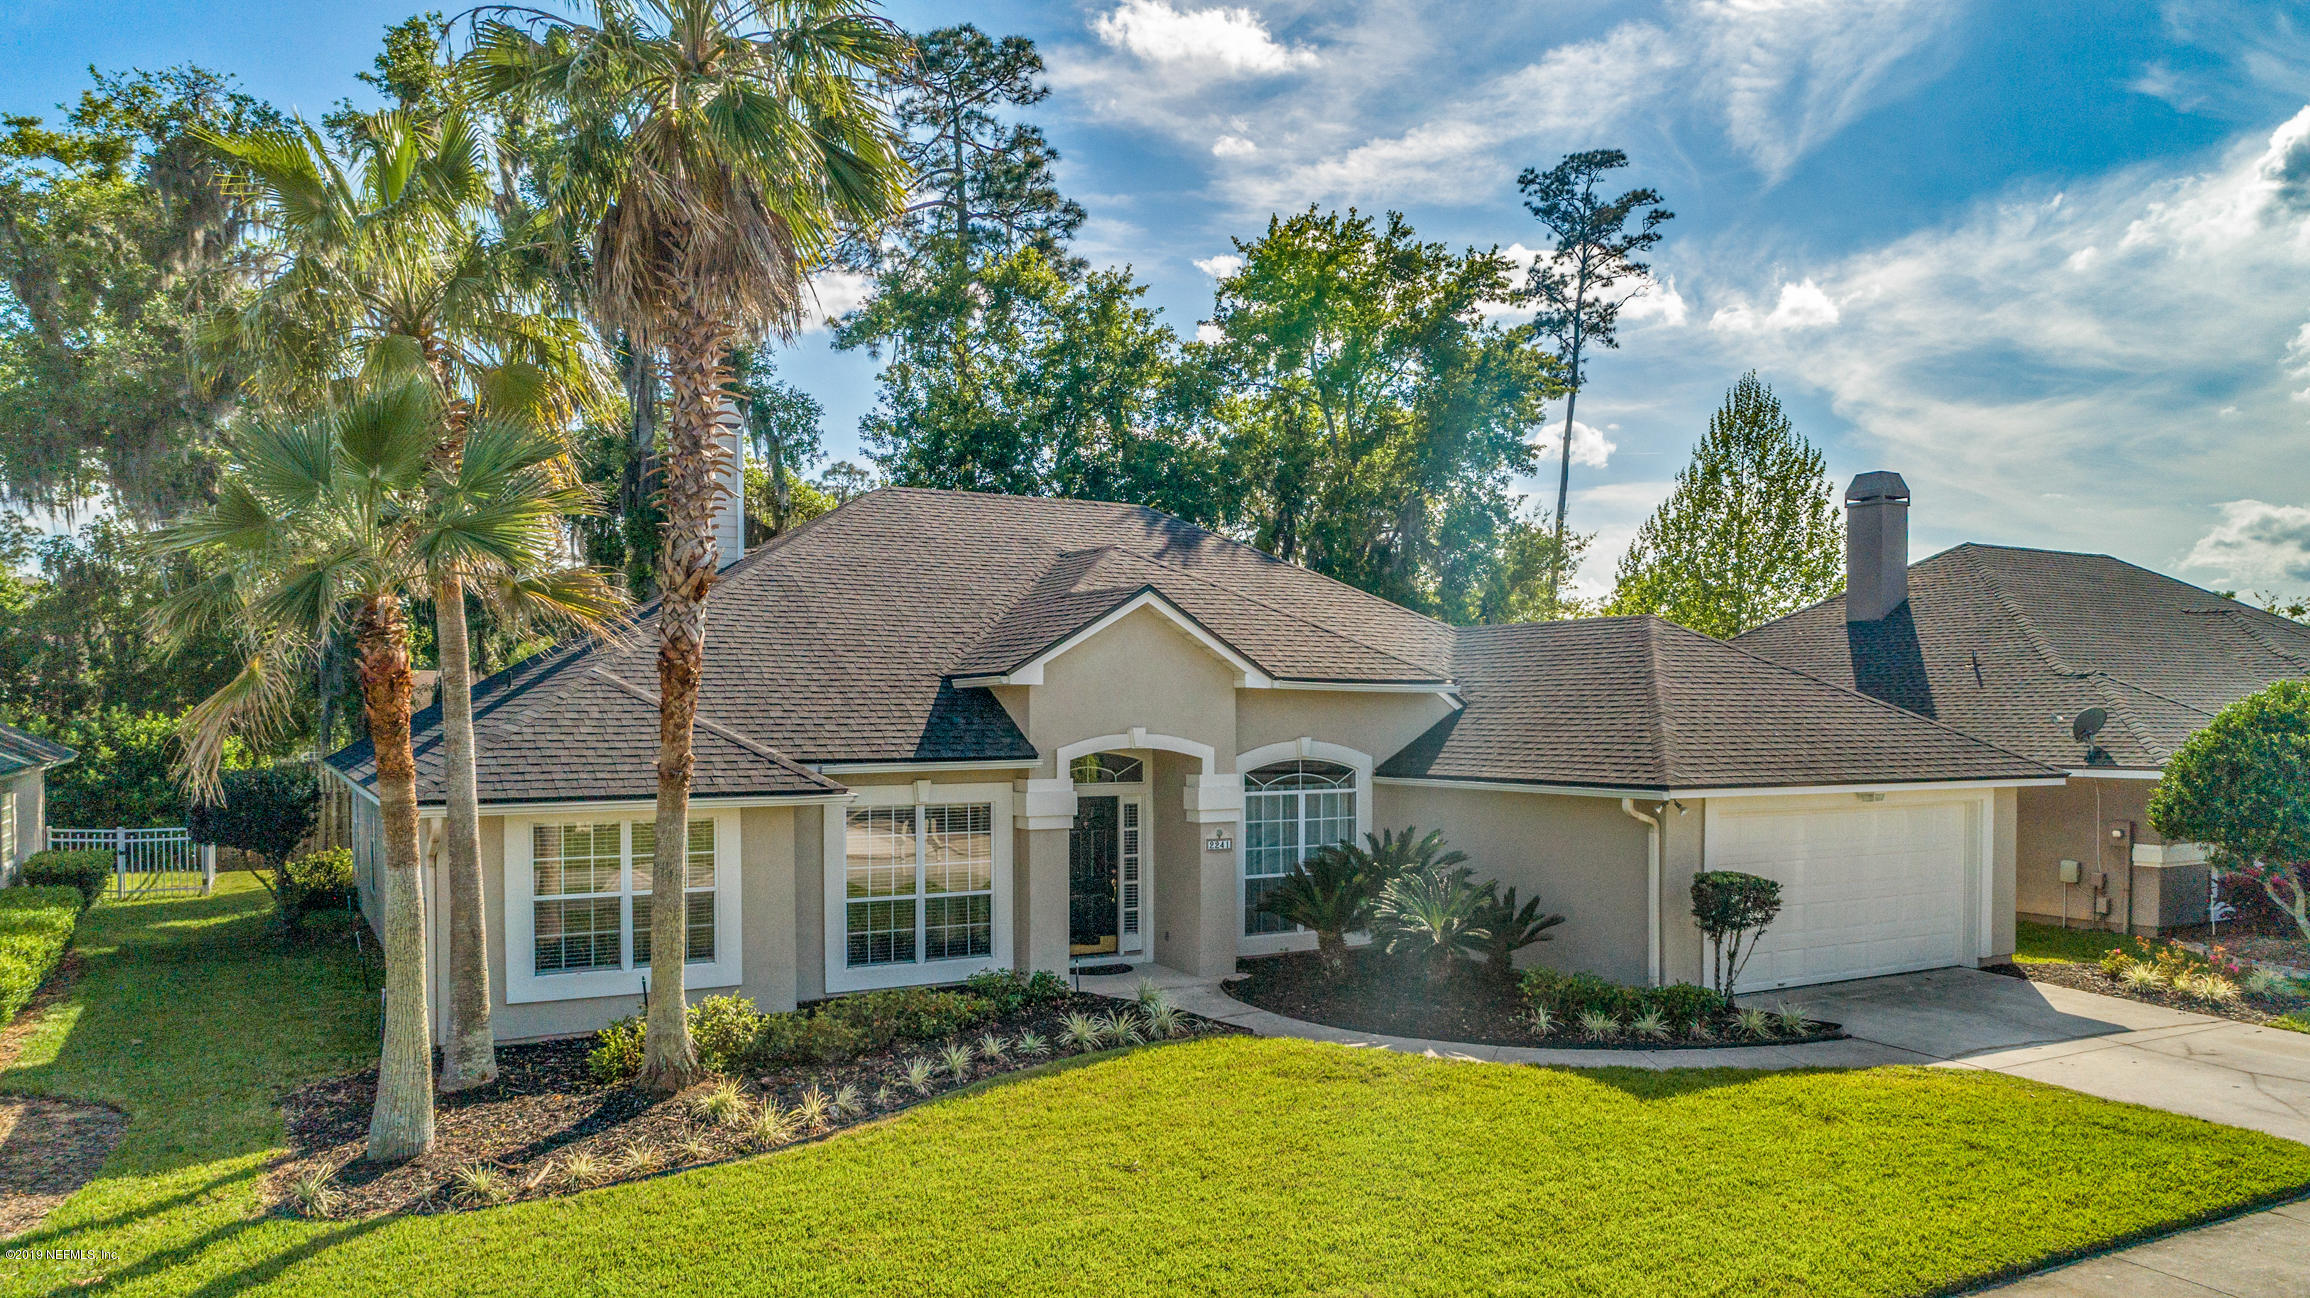 Photo of 2241 LOOKOUT, FLEMING ISLAND, FL 32003